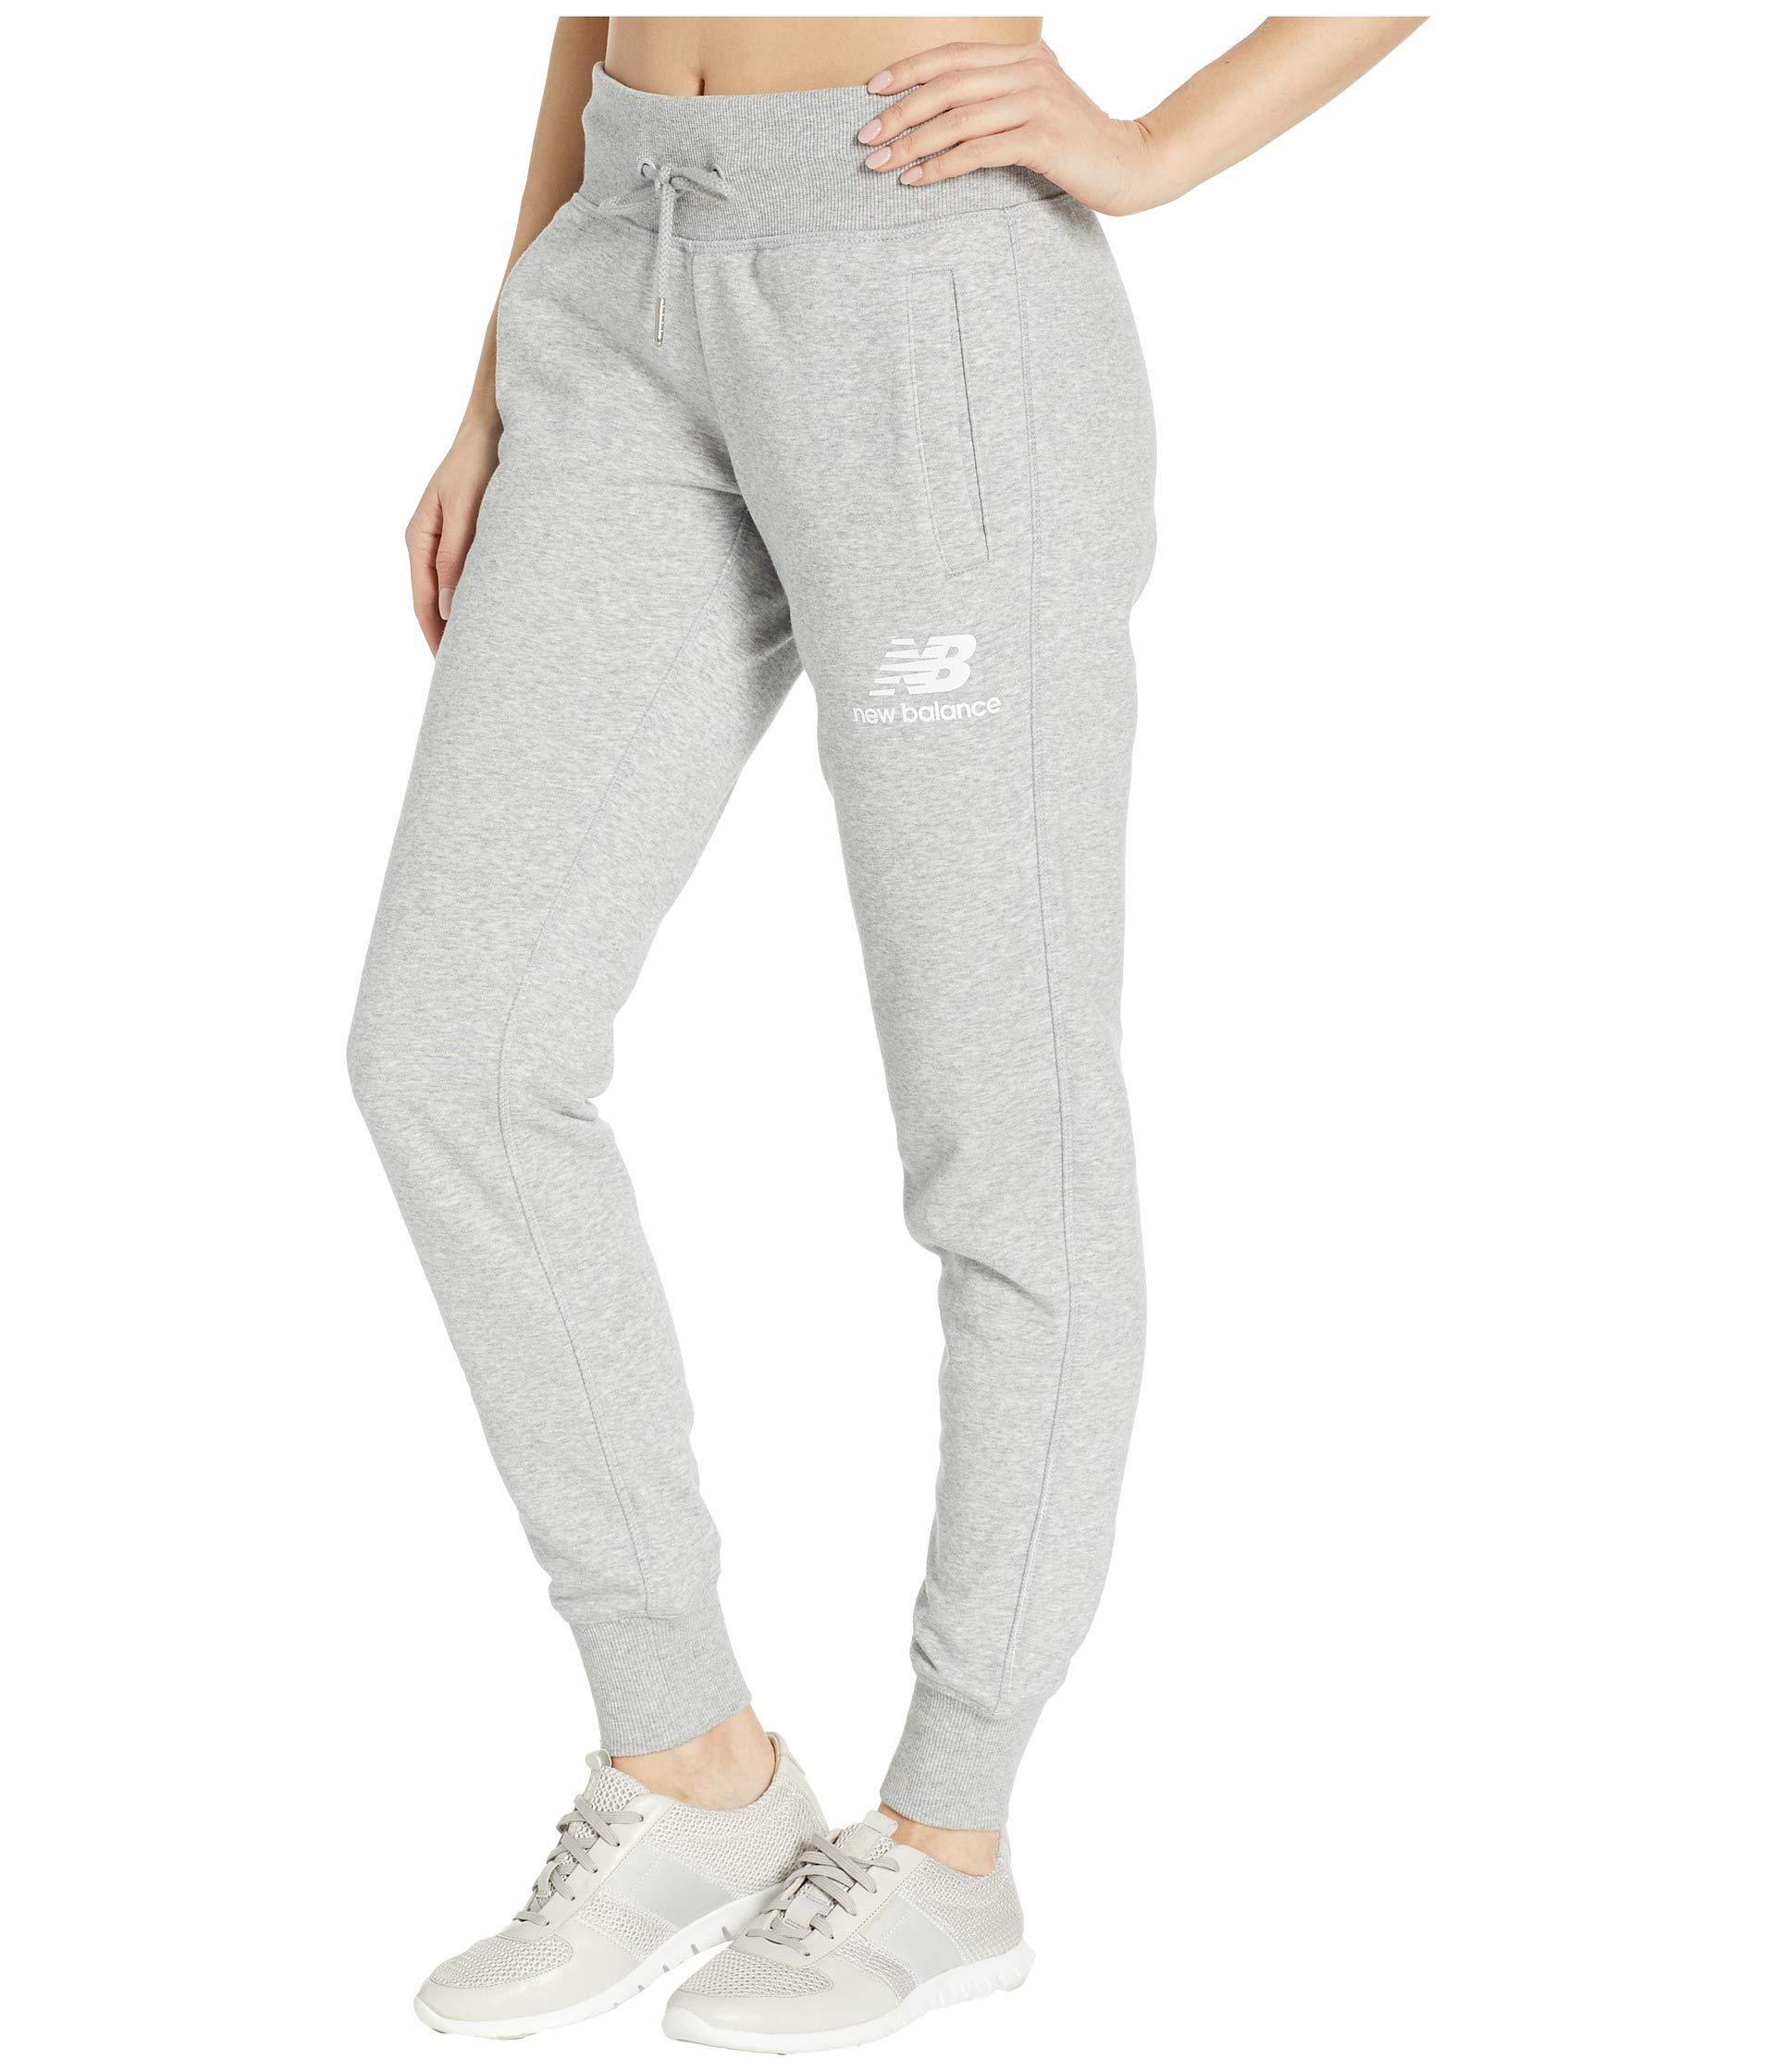 a48978d51768c New Balance - Gray Essentials French Terry Sweatpants - Lyst. View  fullscreen